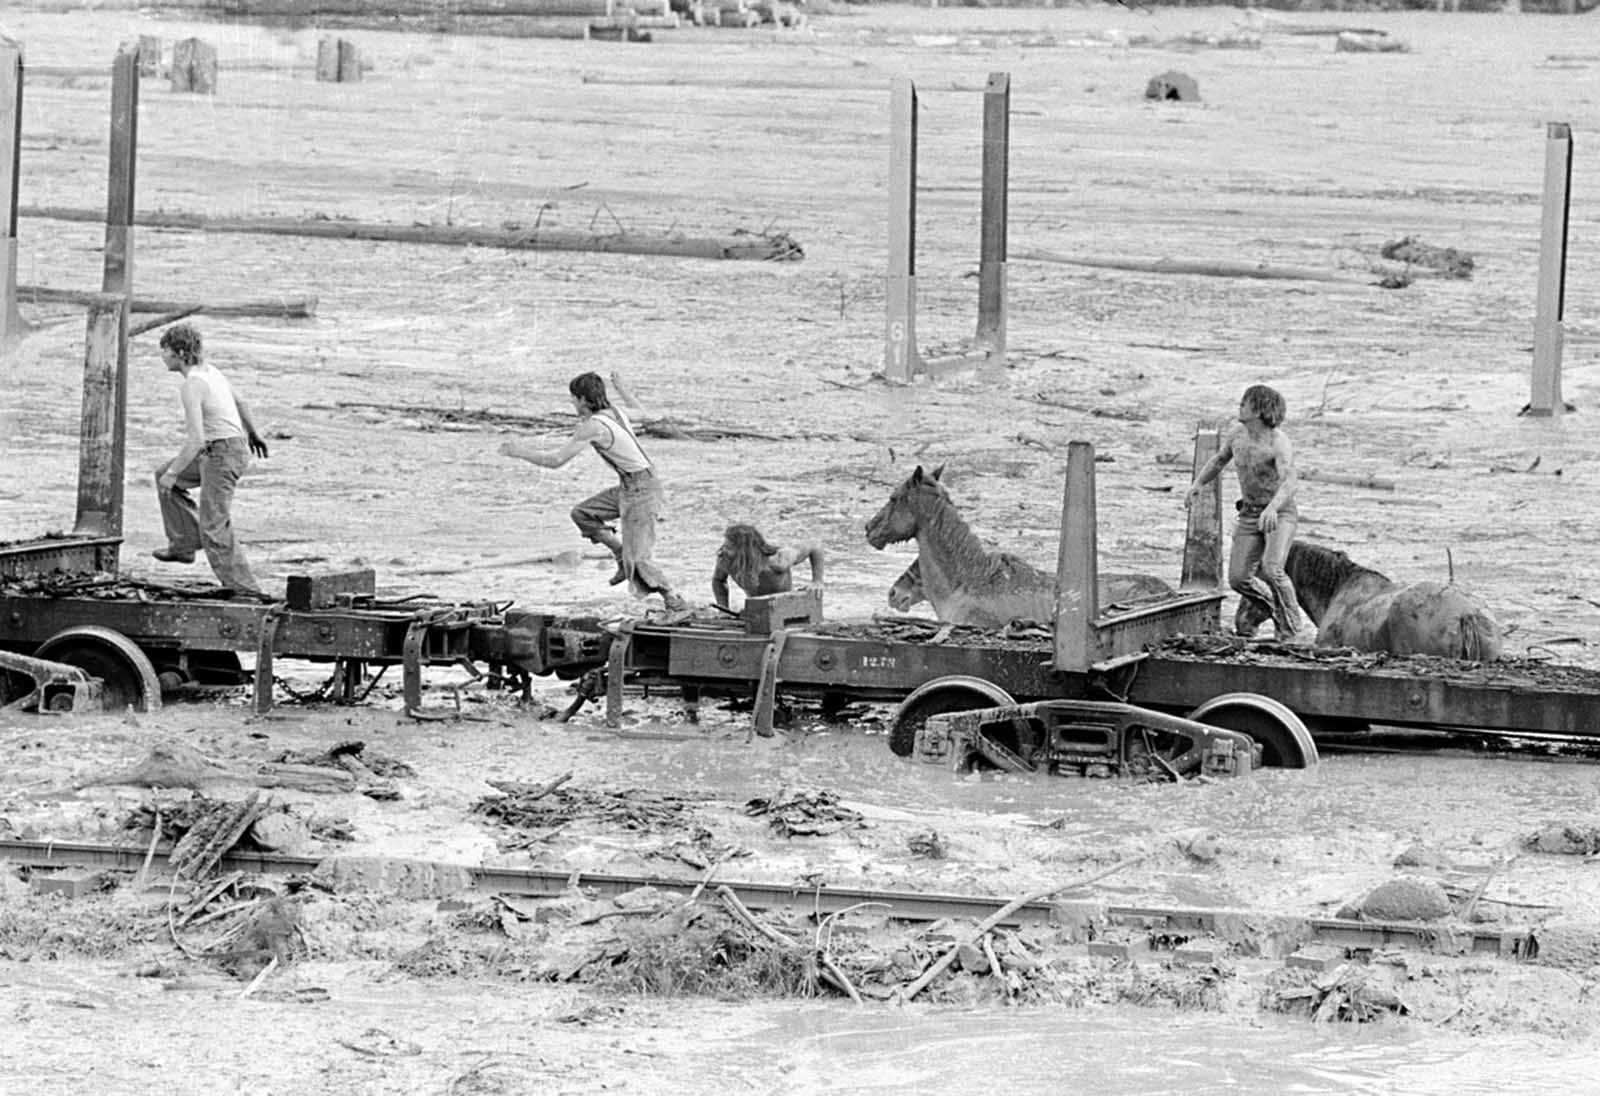 Bob Brown (right) and John Brown climb onto railroad car, heading down the train along with two additional would-be horse rescuers, giving up their efforts as they flee for their lives as flood waters from the Toutle River begin a sudden rise on May 19, 1980. All four people reached safety but the horses are presumed to have drowned.